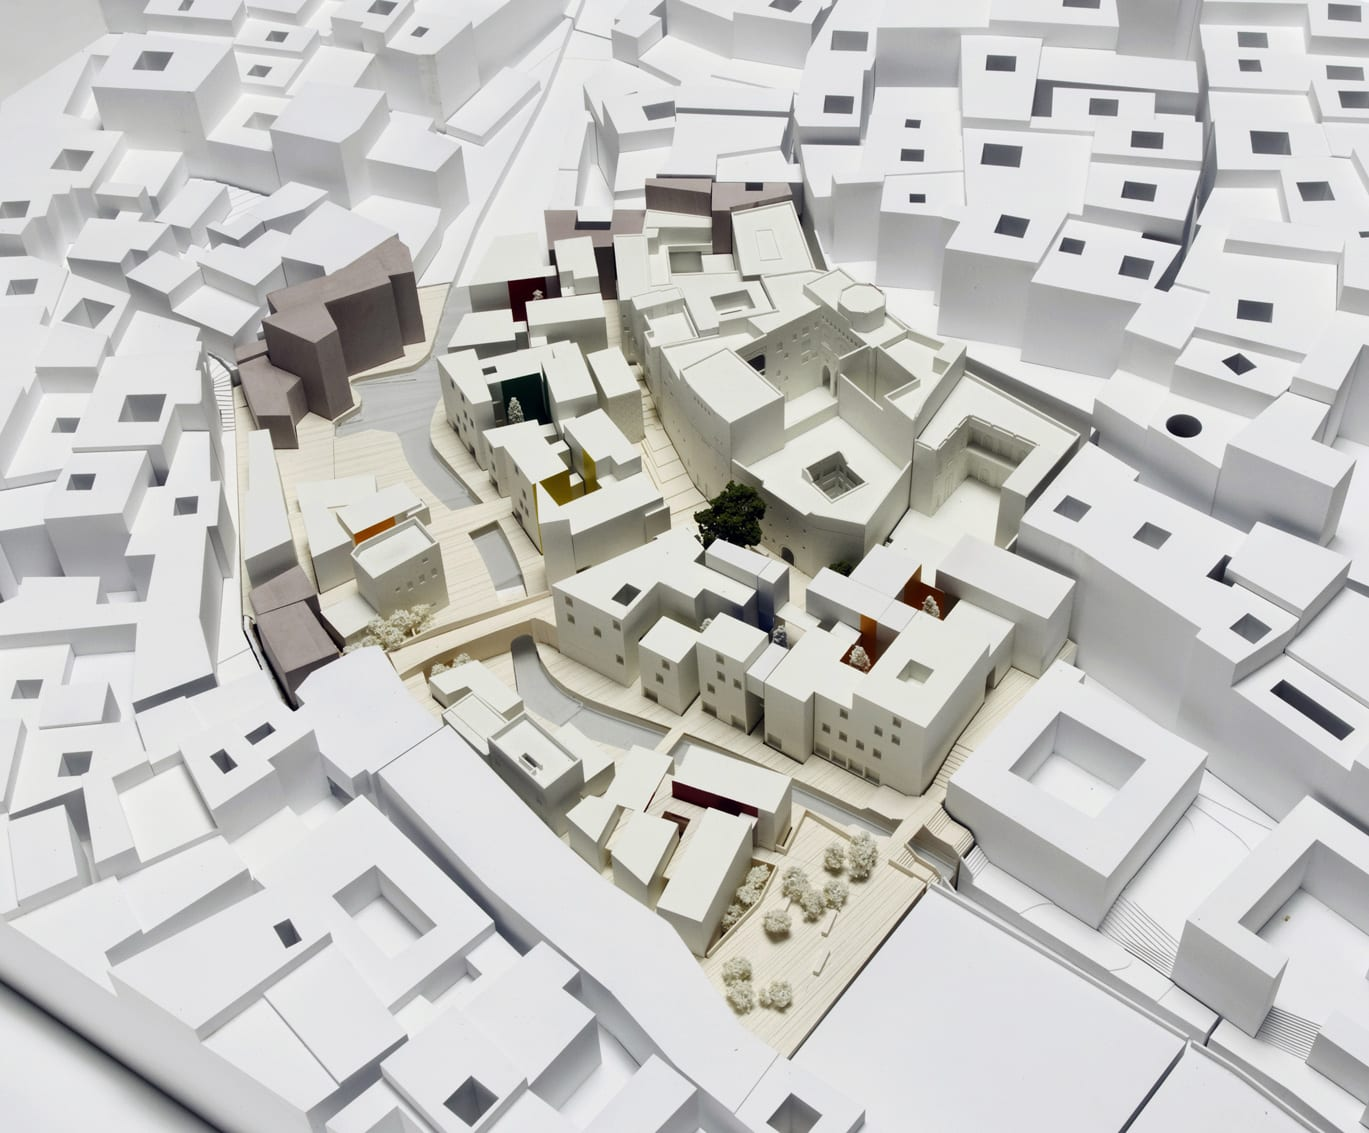 fes_model_5008_2_mossessian_partners_yassir_khalil_studio